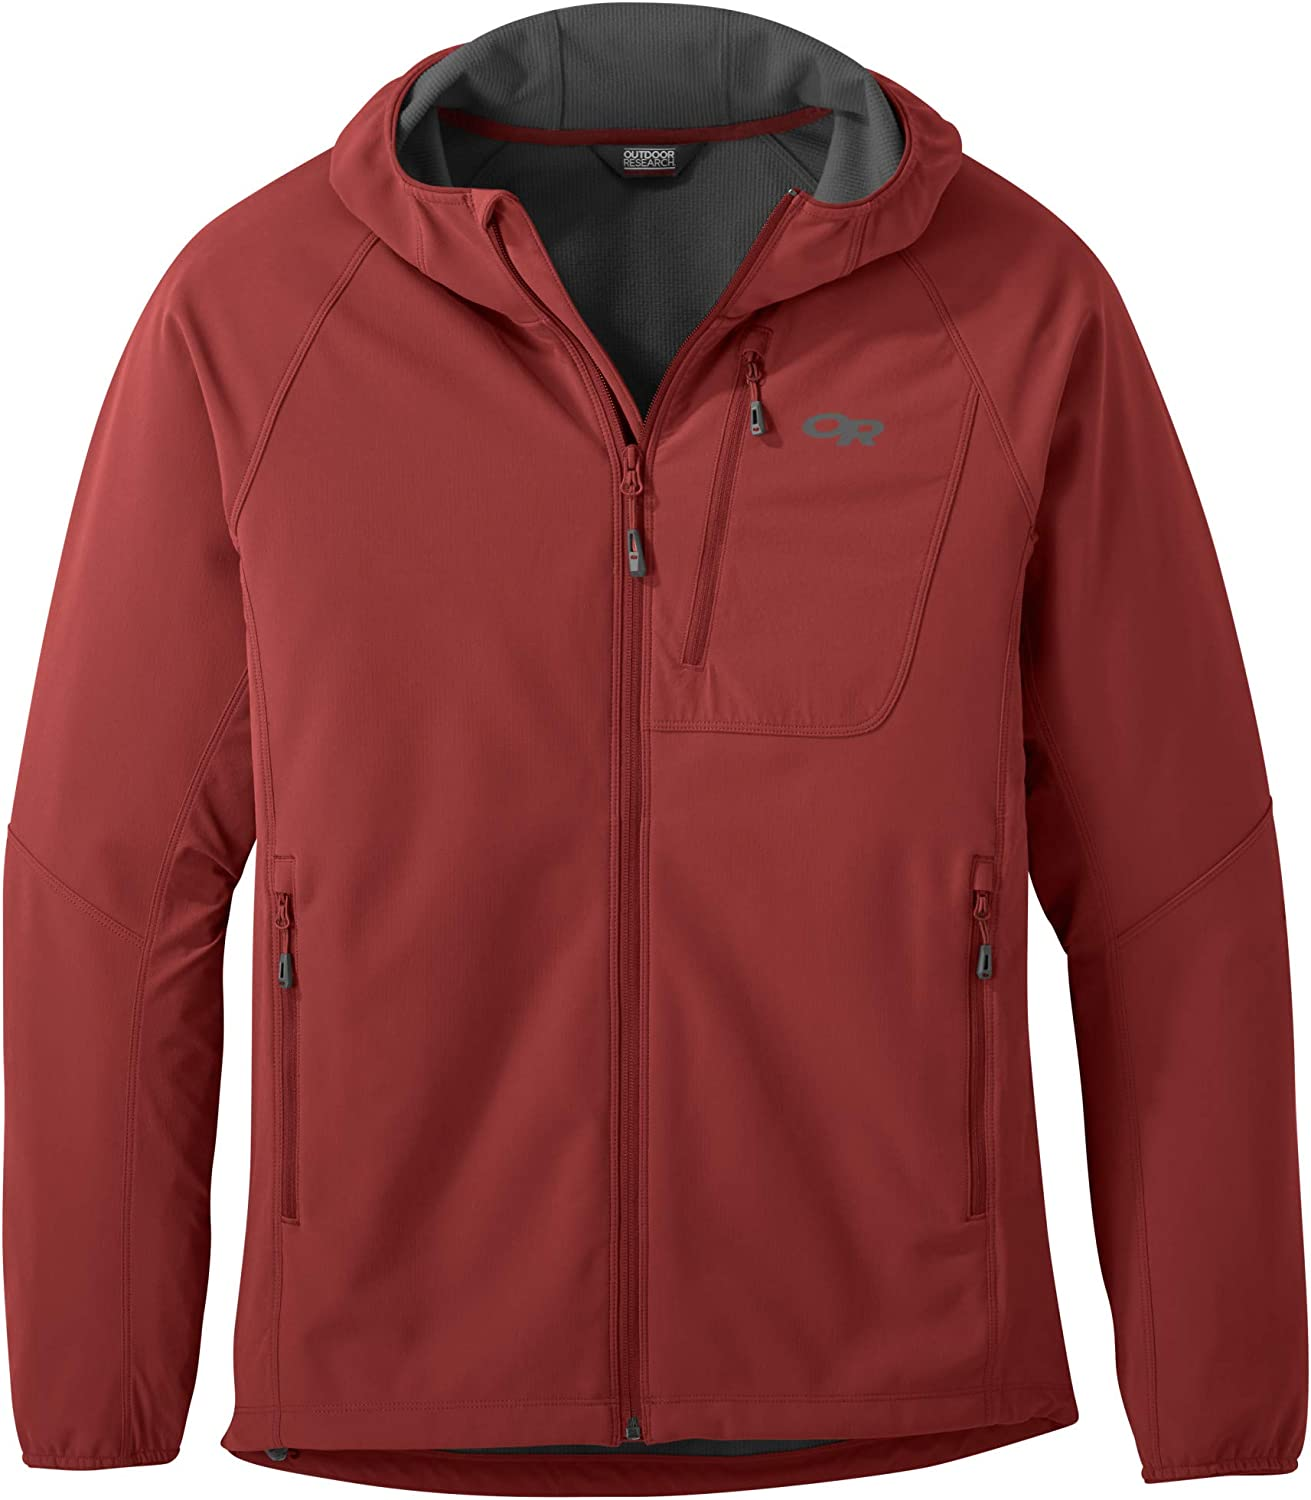 Max 80% OFF Outdoor Research Men's Ferrosi National products Hooded Grid Jacket-Small Sapphire